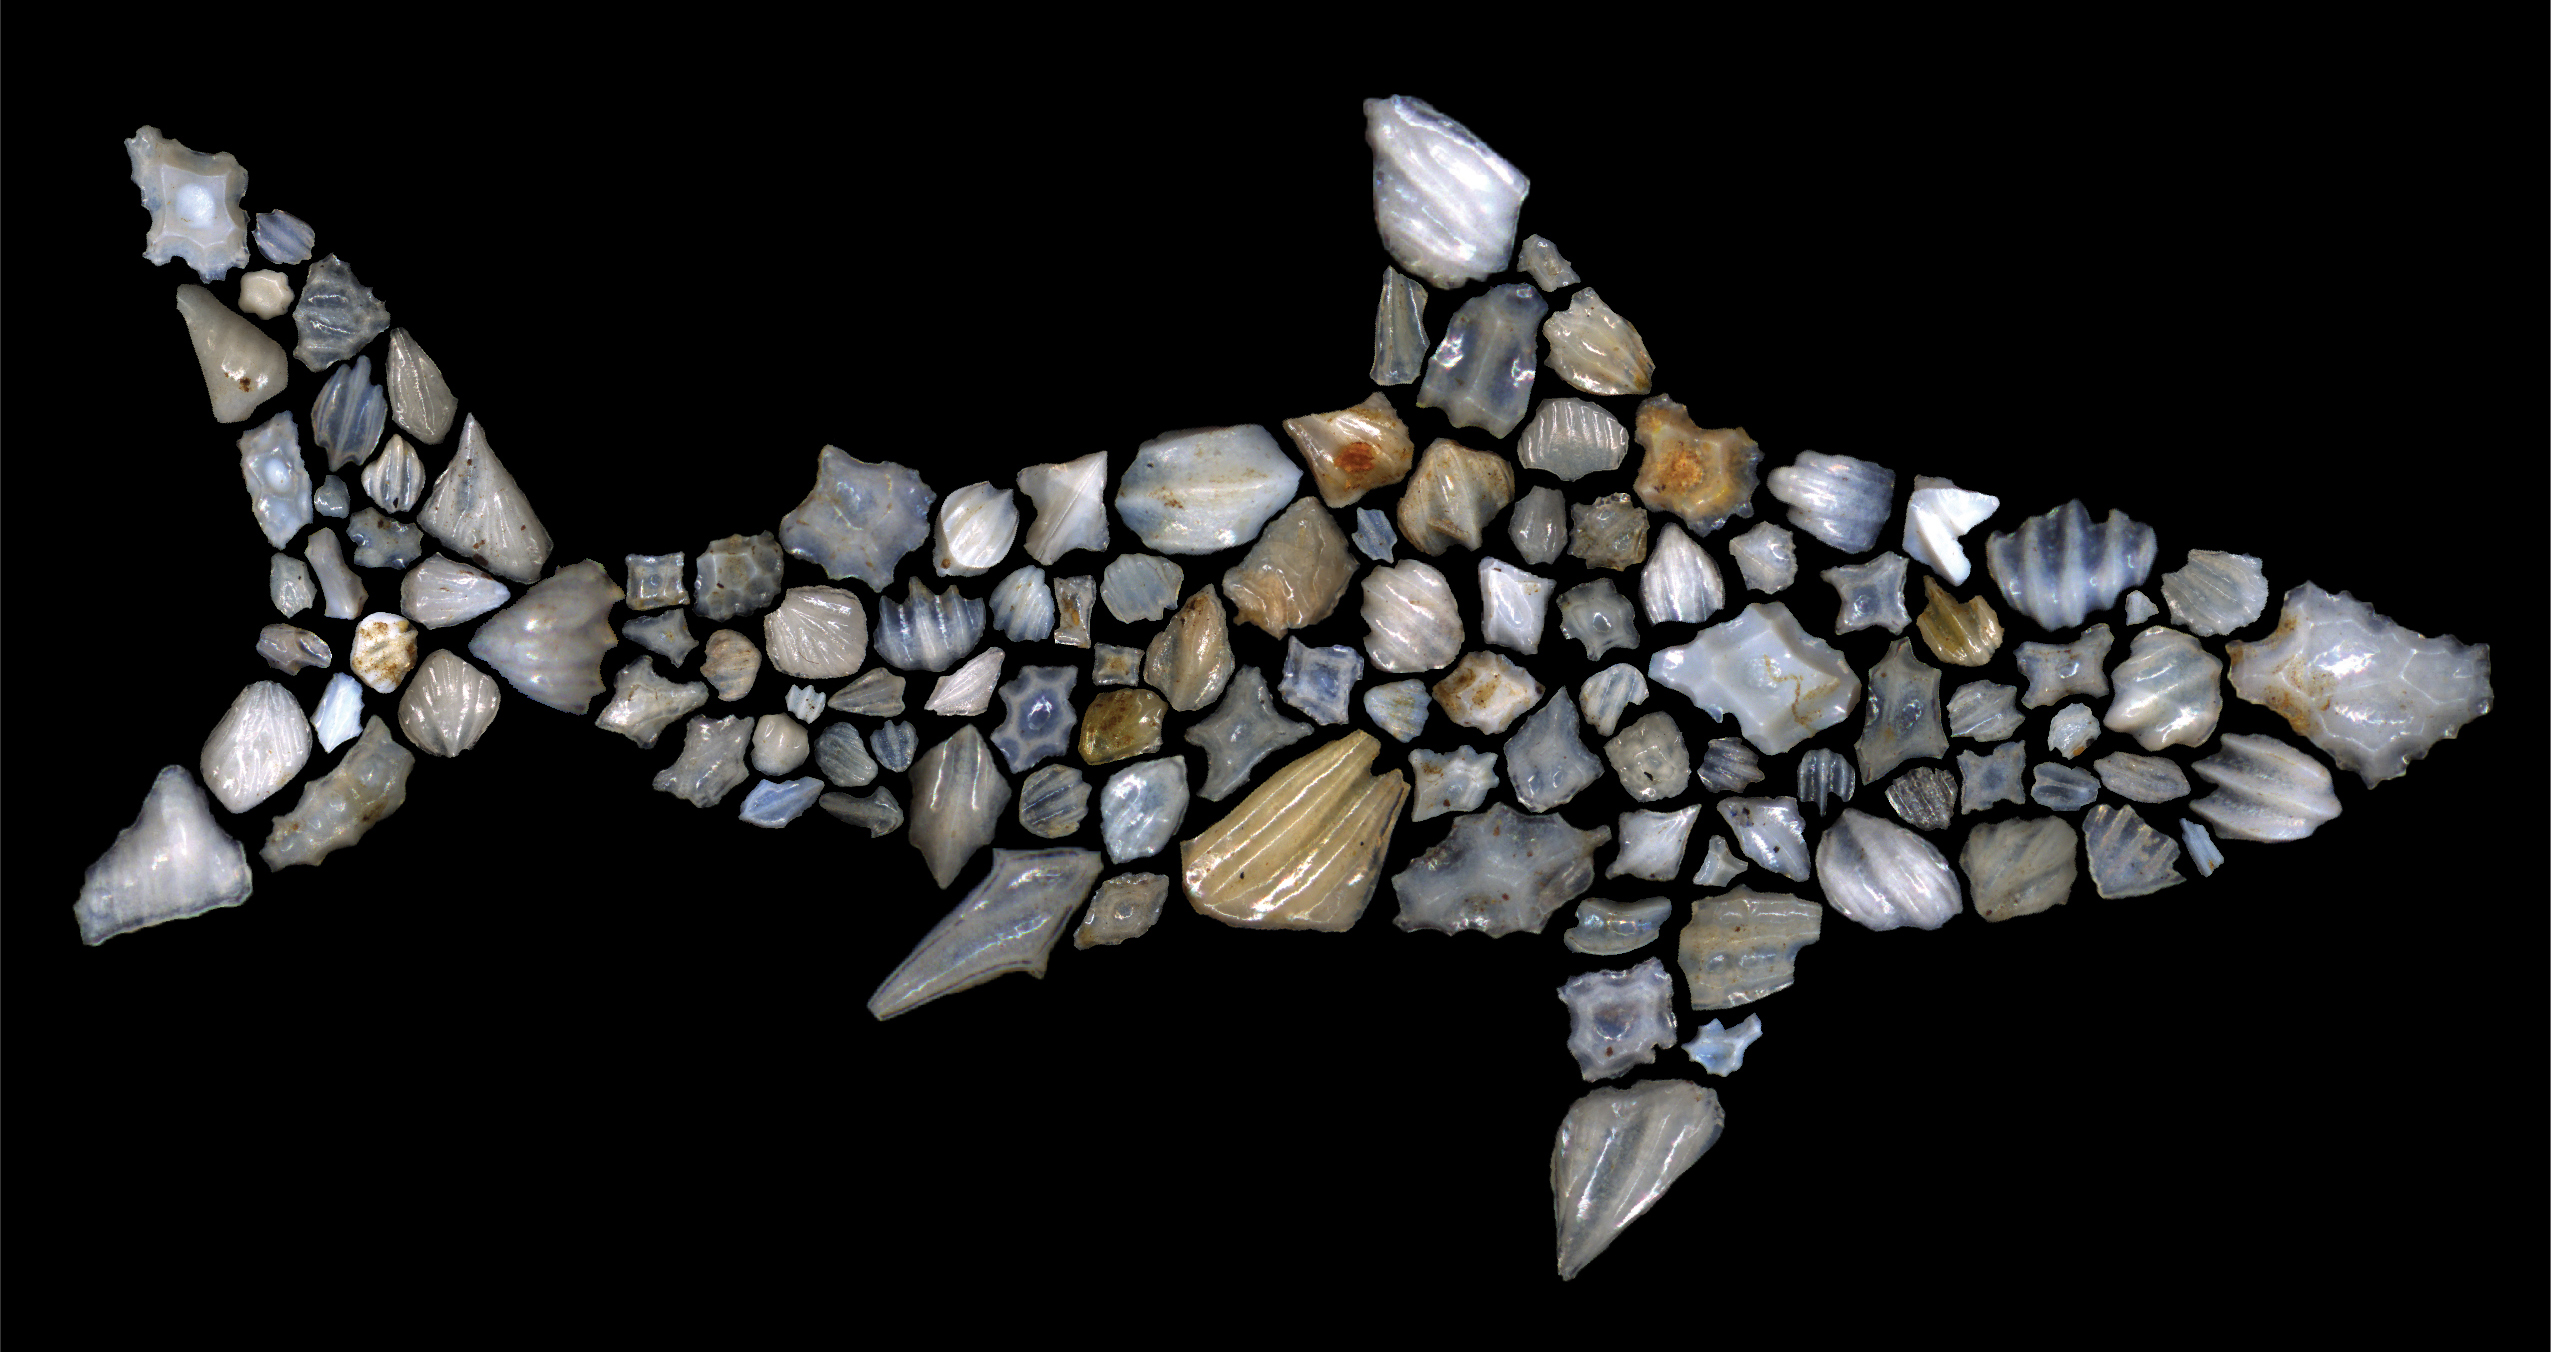 Scientists say 90% of the world's open-ocean sharks died off in mystery extinction event 19 million years ago